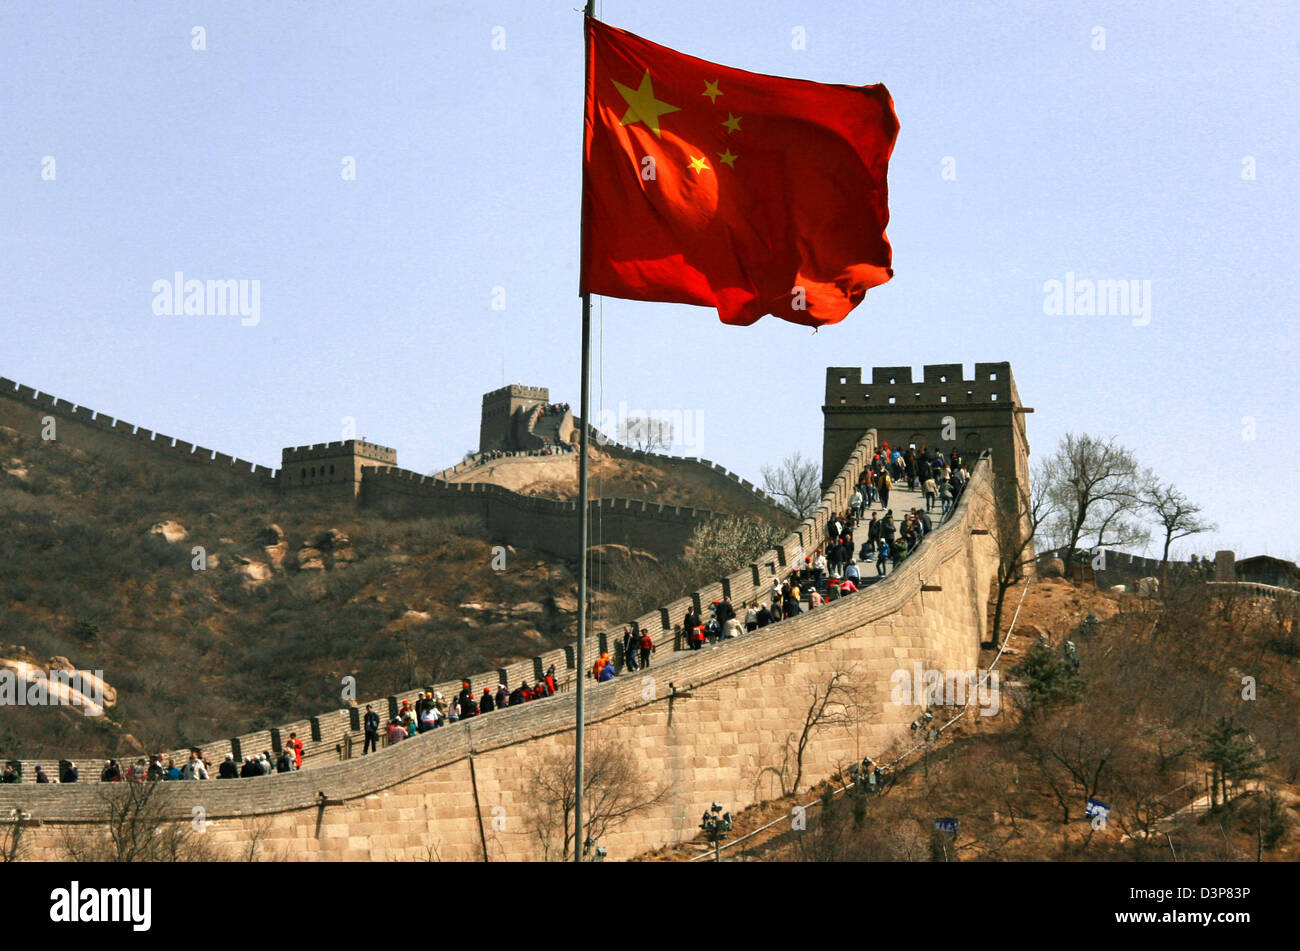 dpa file the national flag of china waves above the great wall